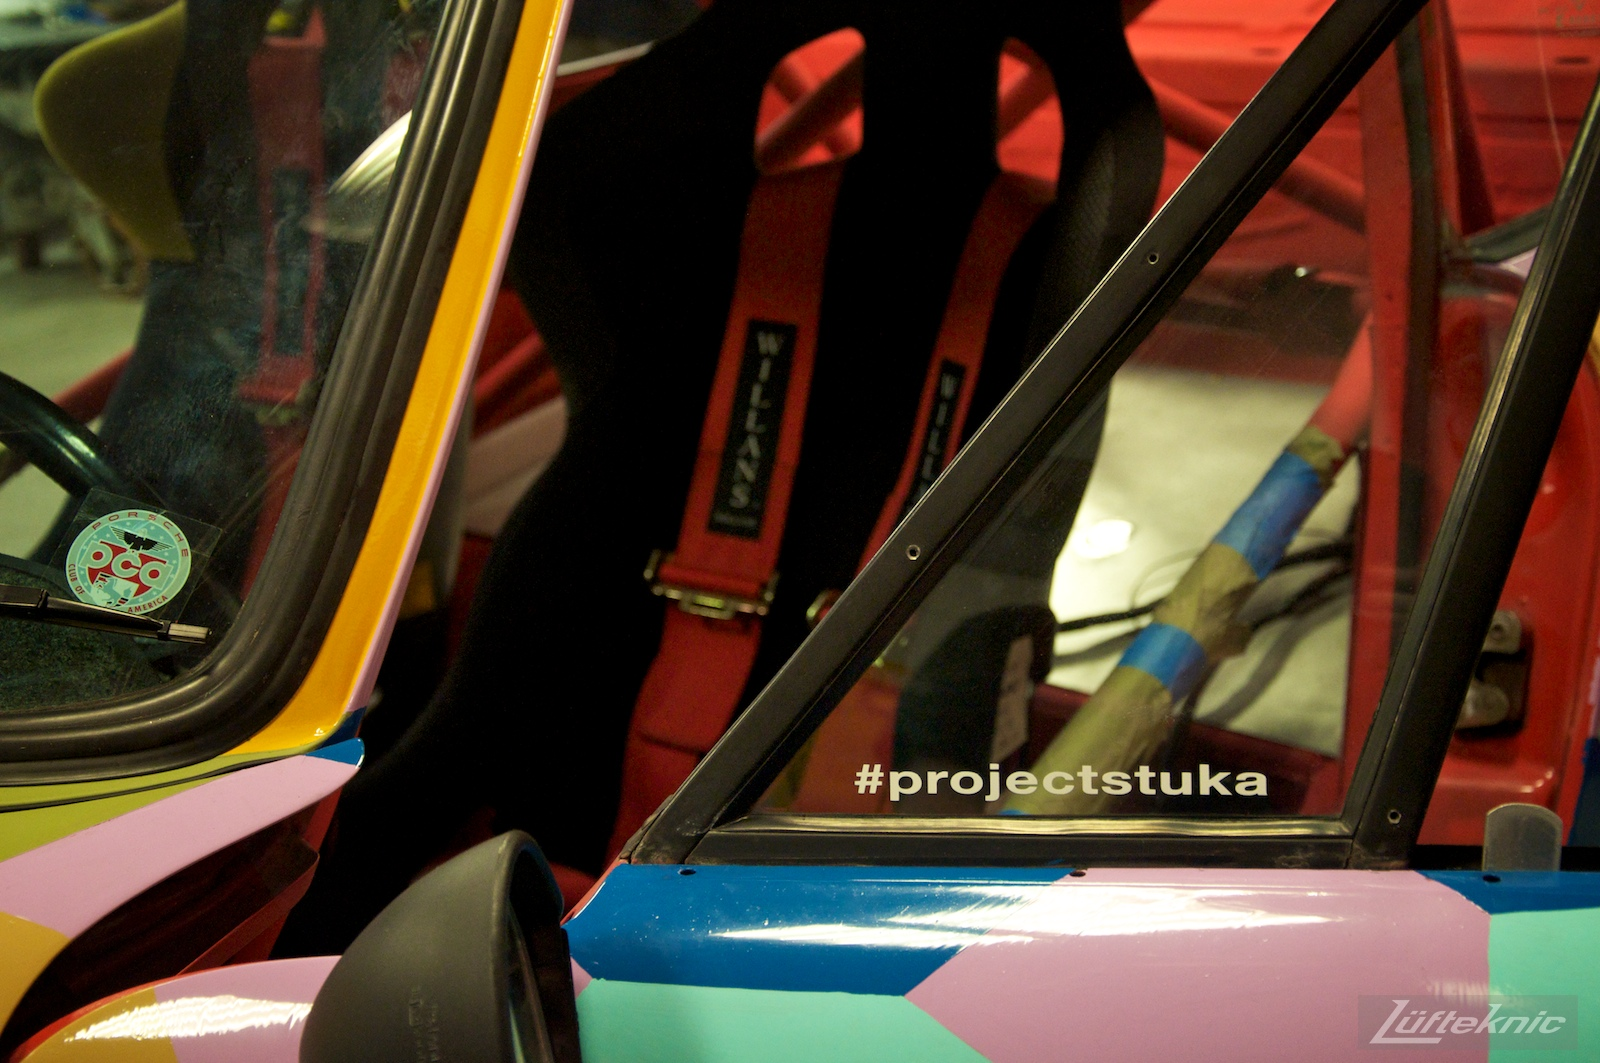 Door, interior and racing seat shown on the Lüfteknic #projectstuka Porsche 930 Turbo